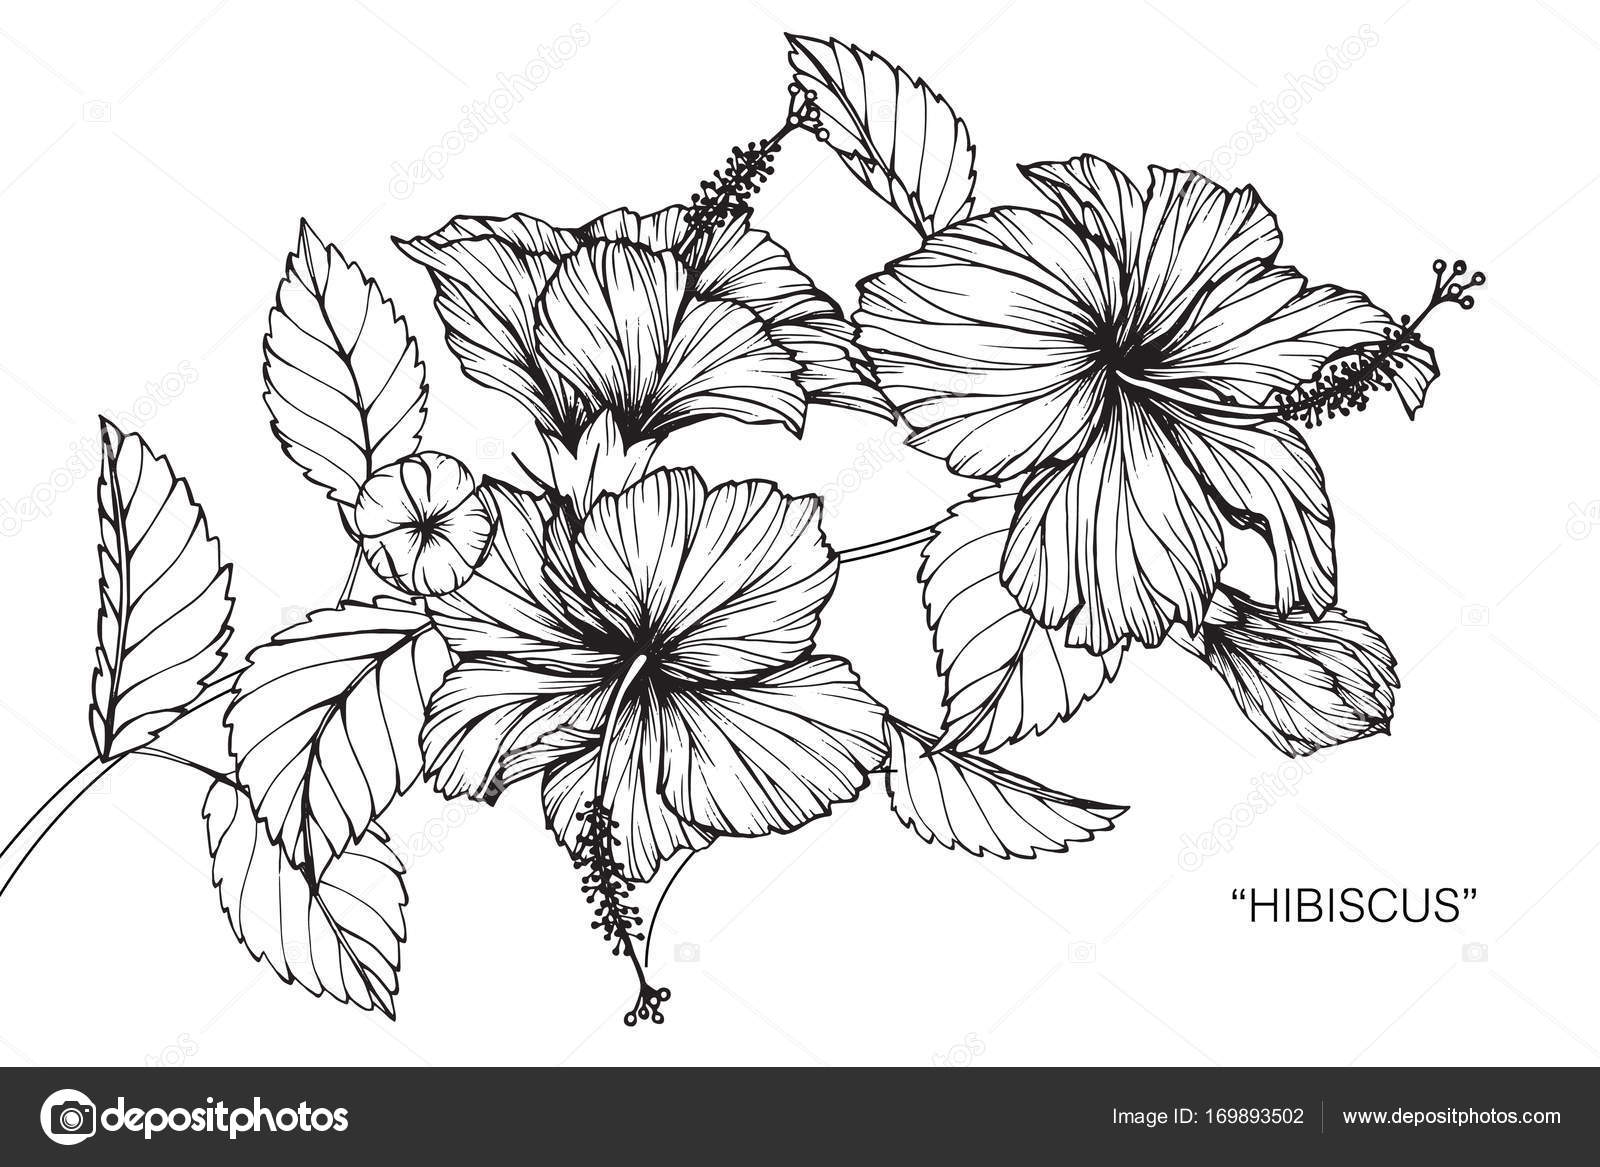 Hibiscus Flower Line Drawing : Hibiscus flower drawing sketch black white line art